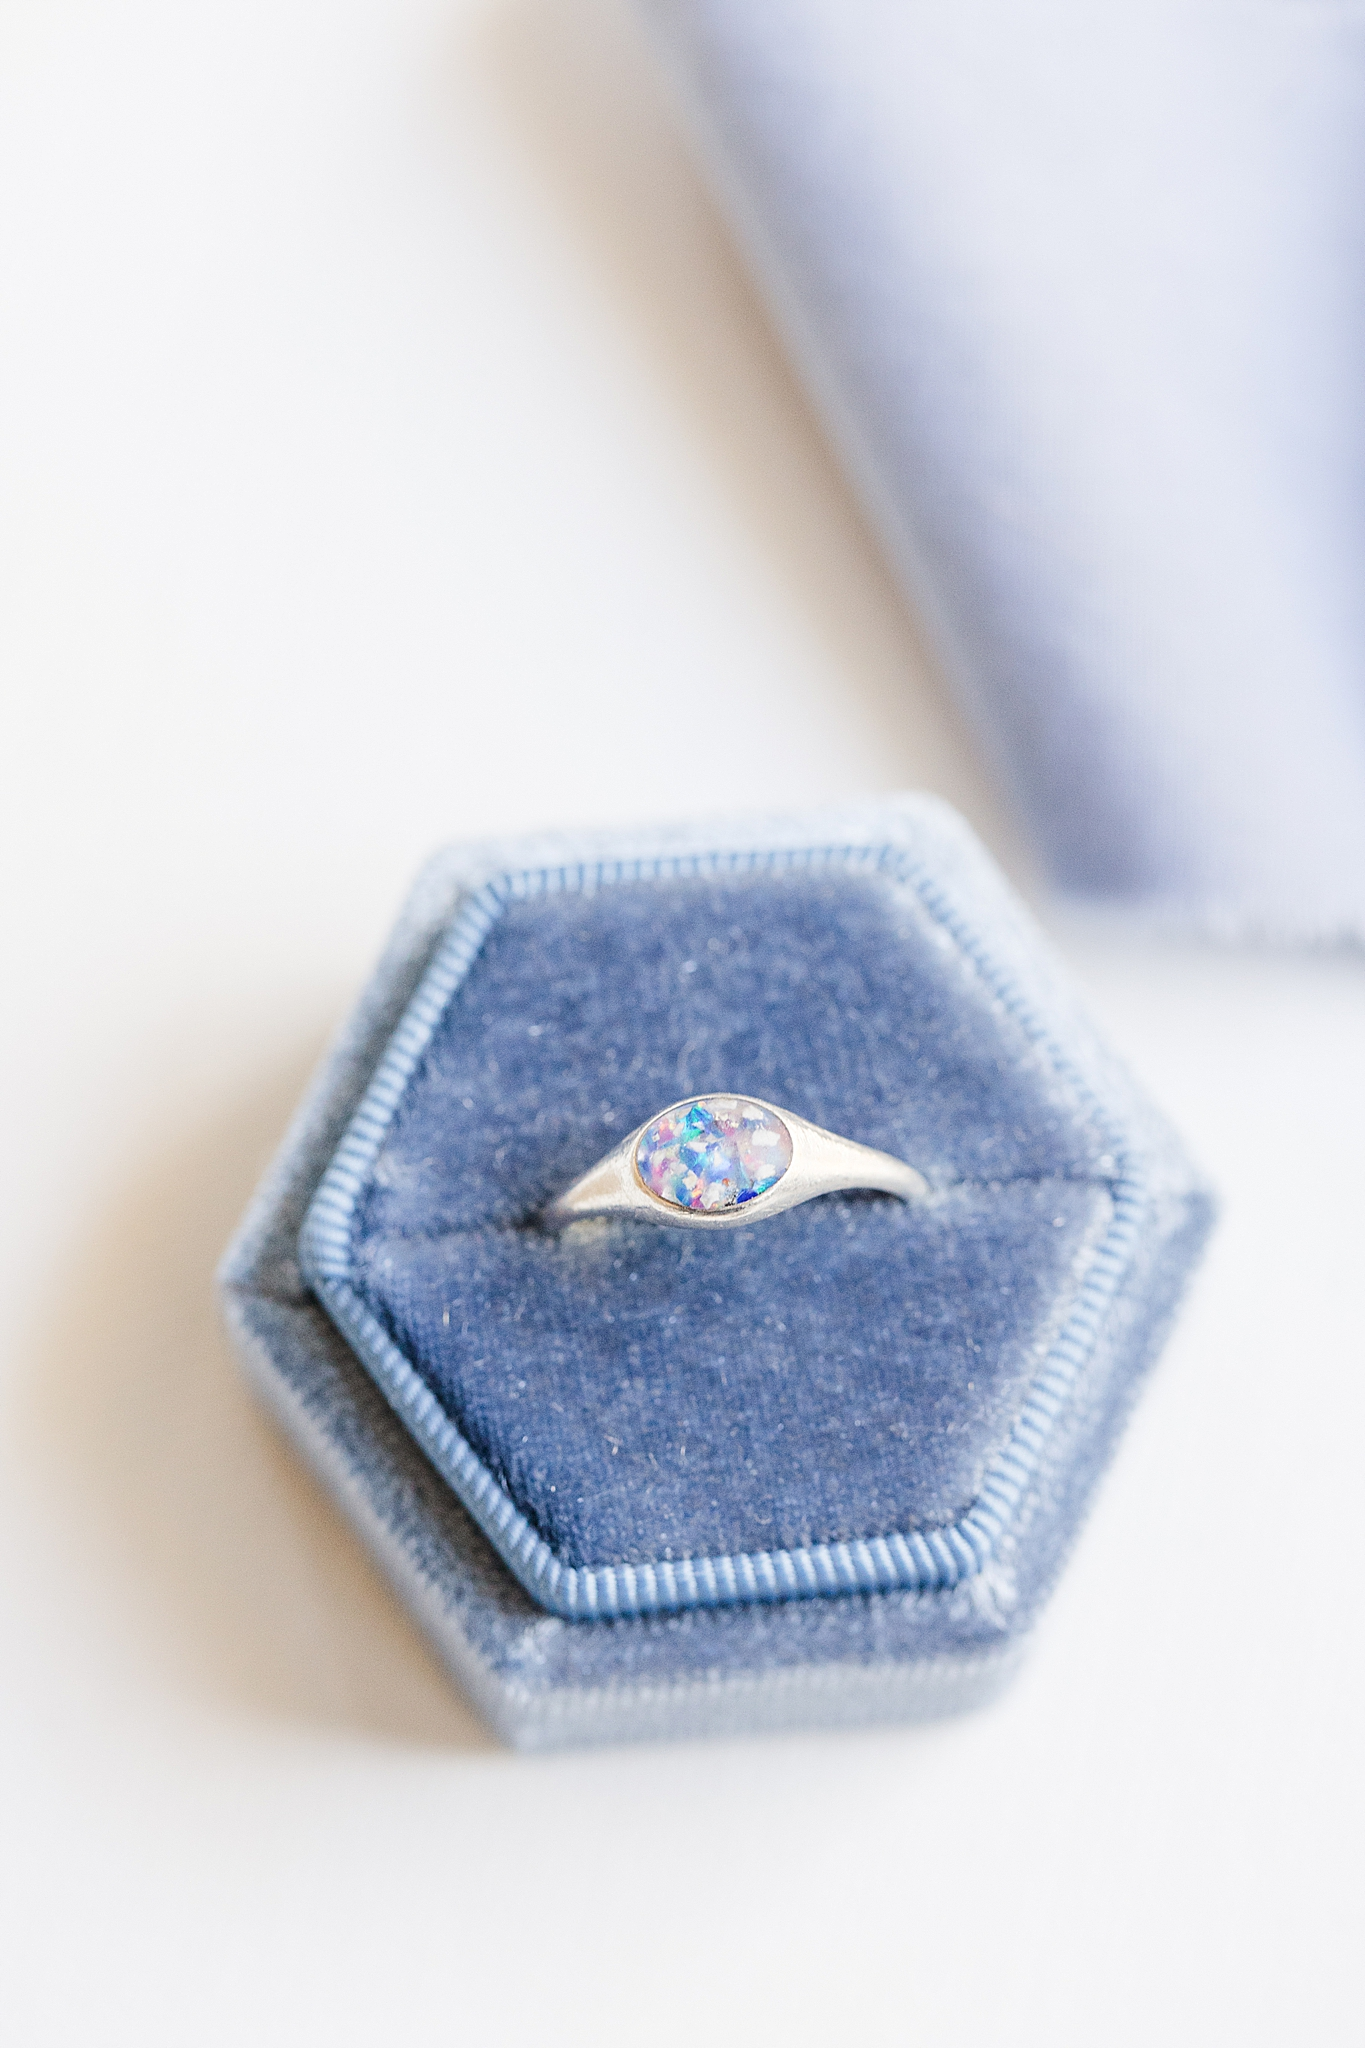 bride's ring with dog's ashes